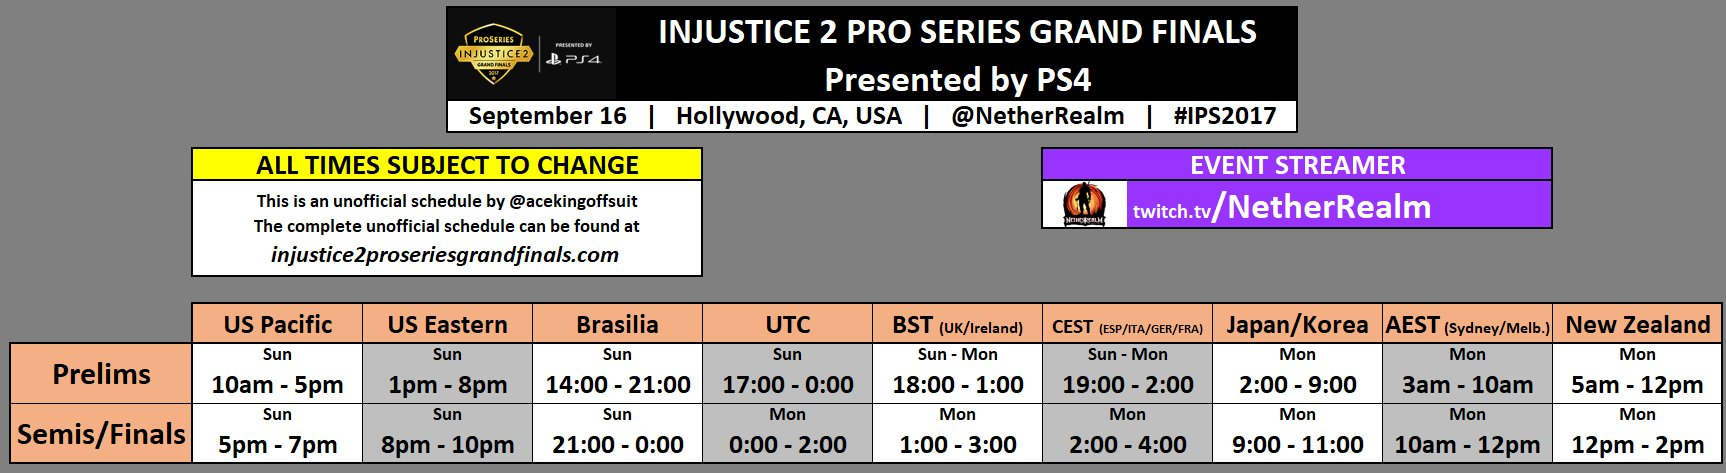 2Pm Bst To Aest injustice 2 pro series grand finals schedule 1 out of 1